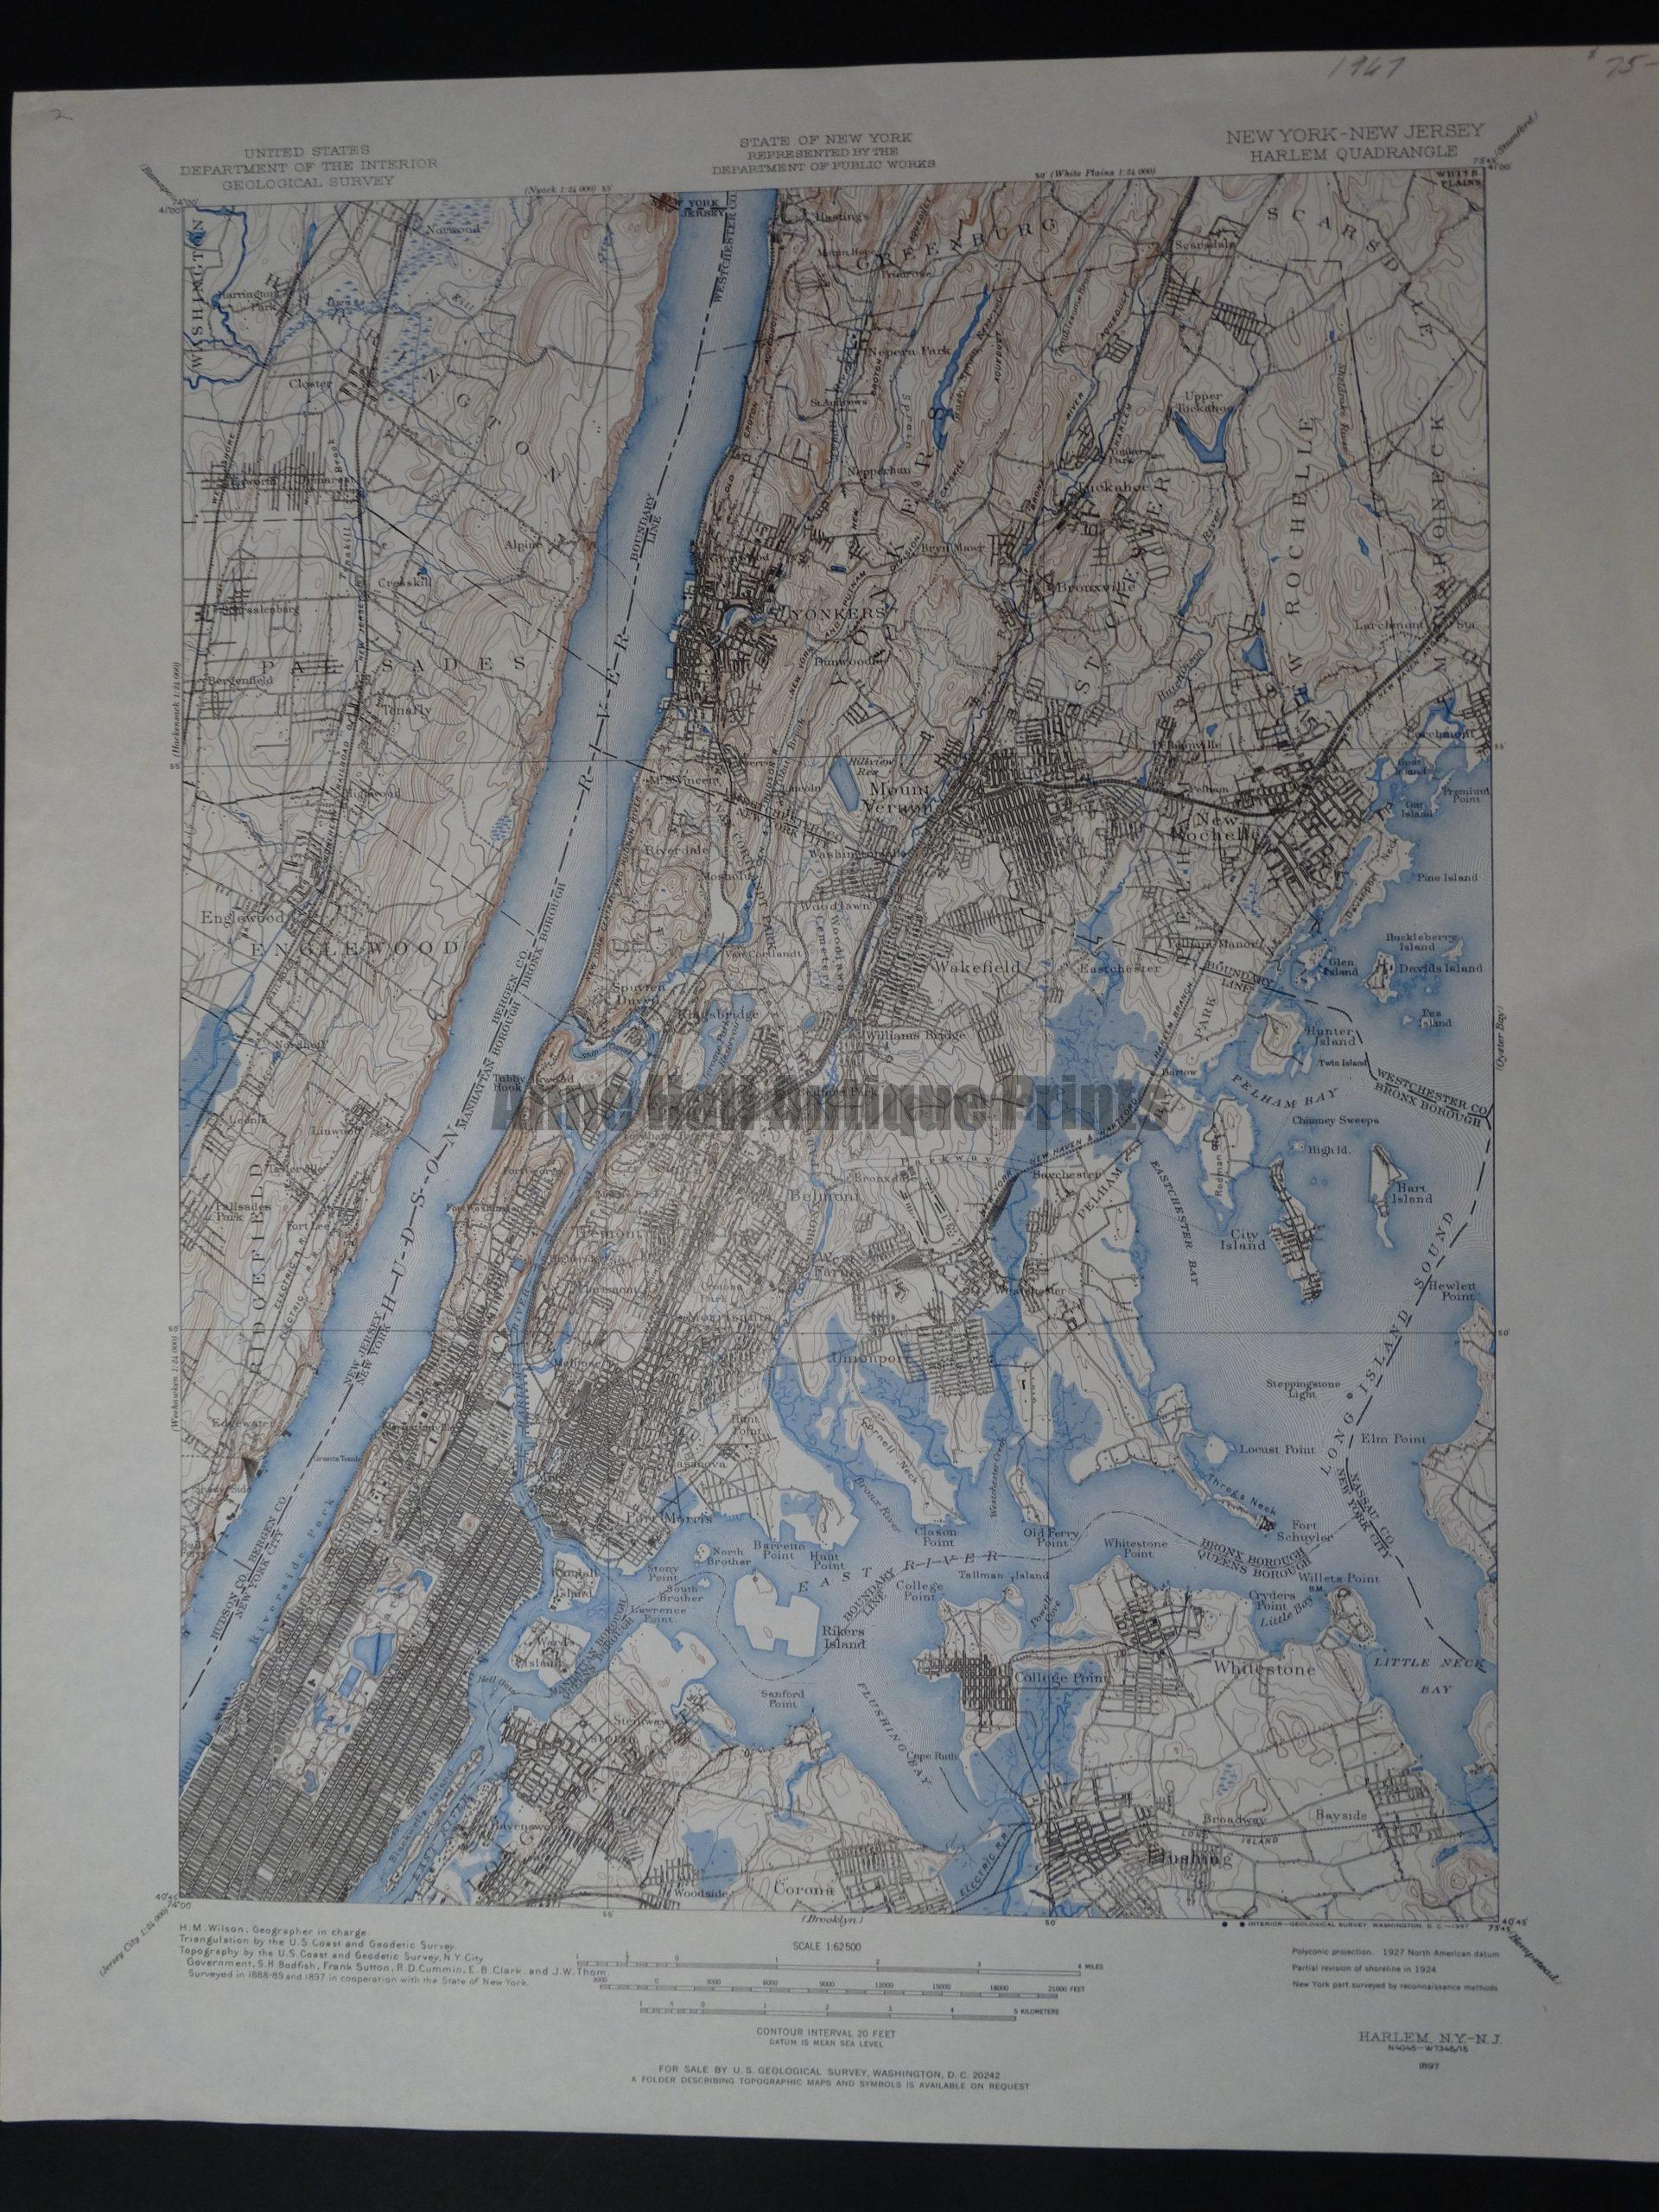 Wonderful vintage 1967 topo map of Manhattan from the